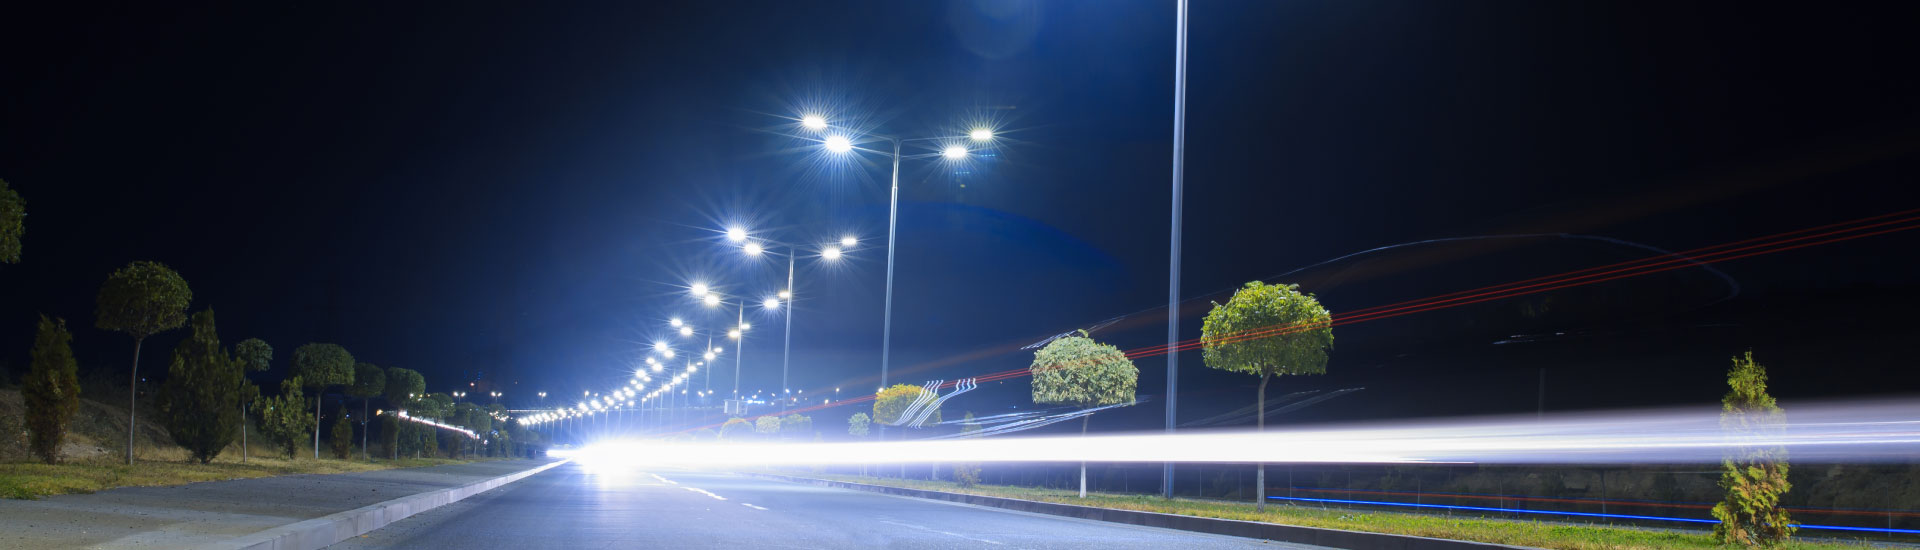 Modern LED street lights delivering high quality light exactly where needed